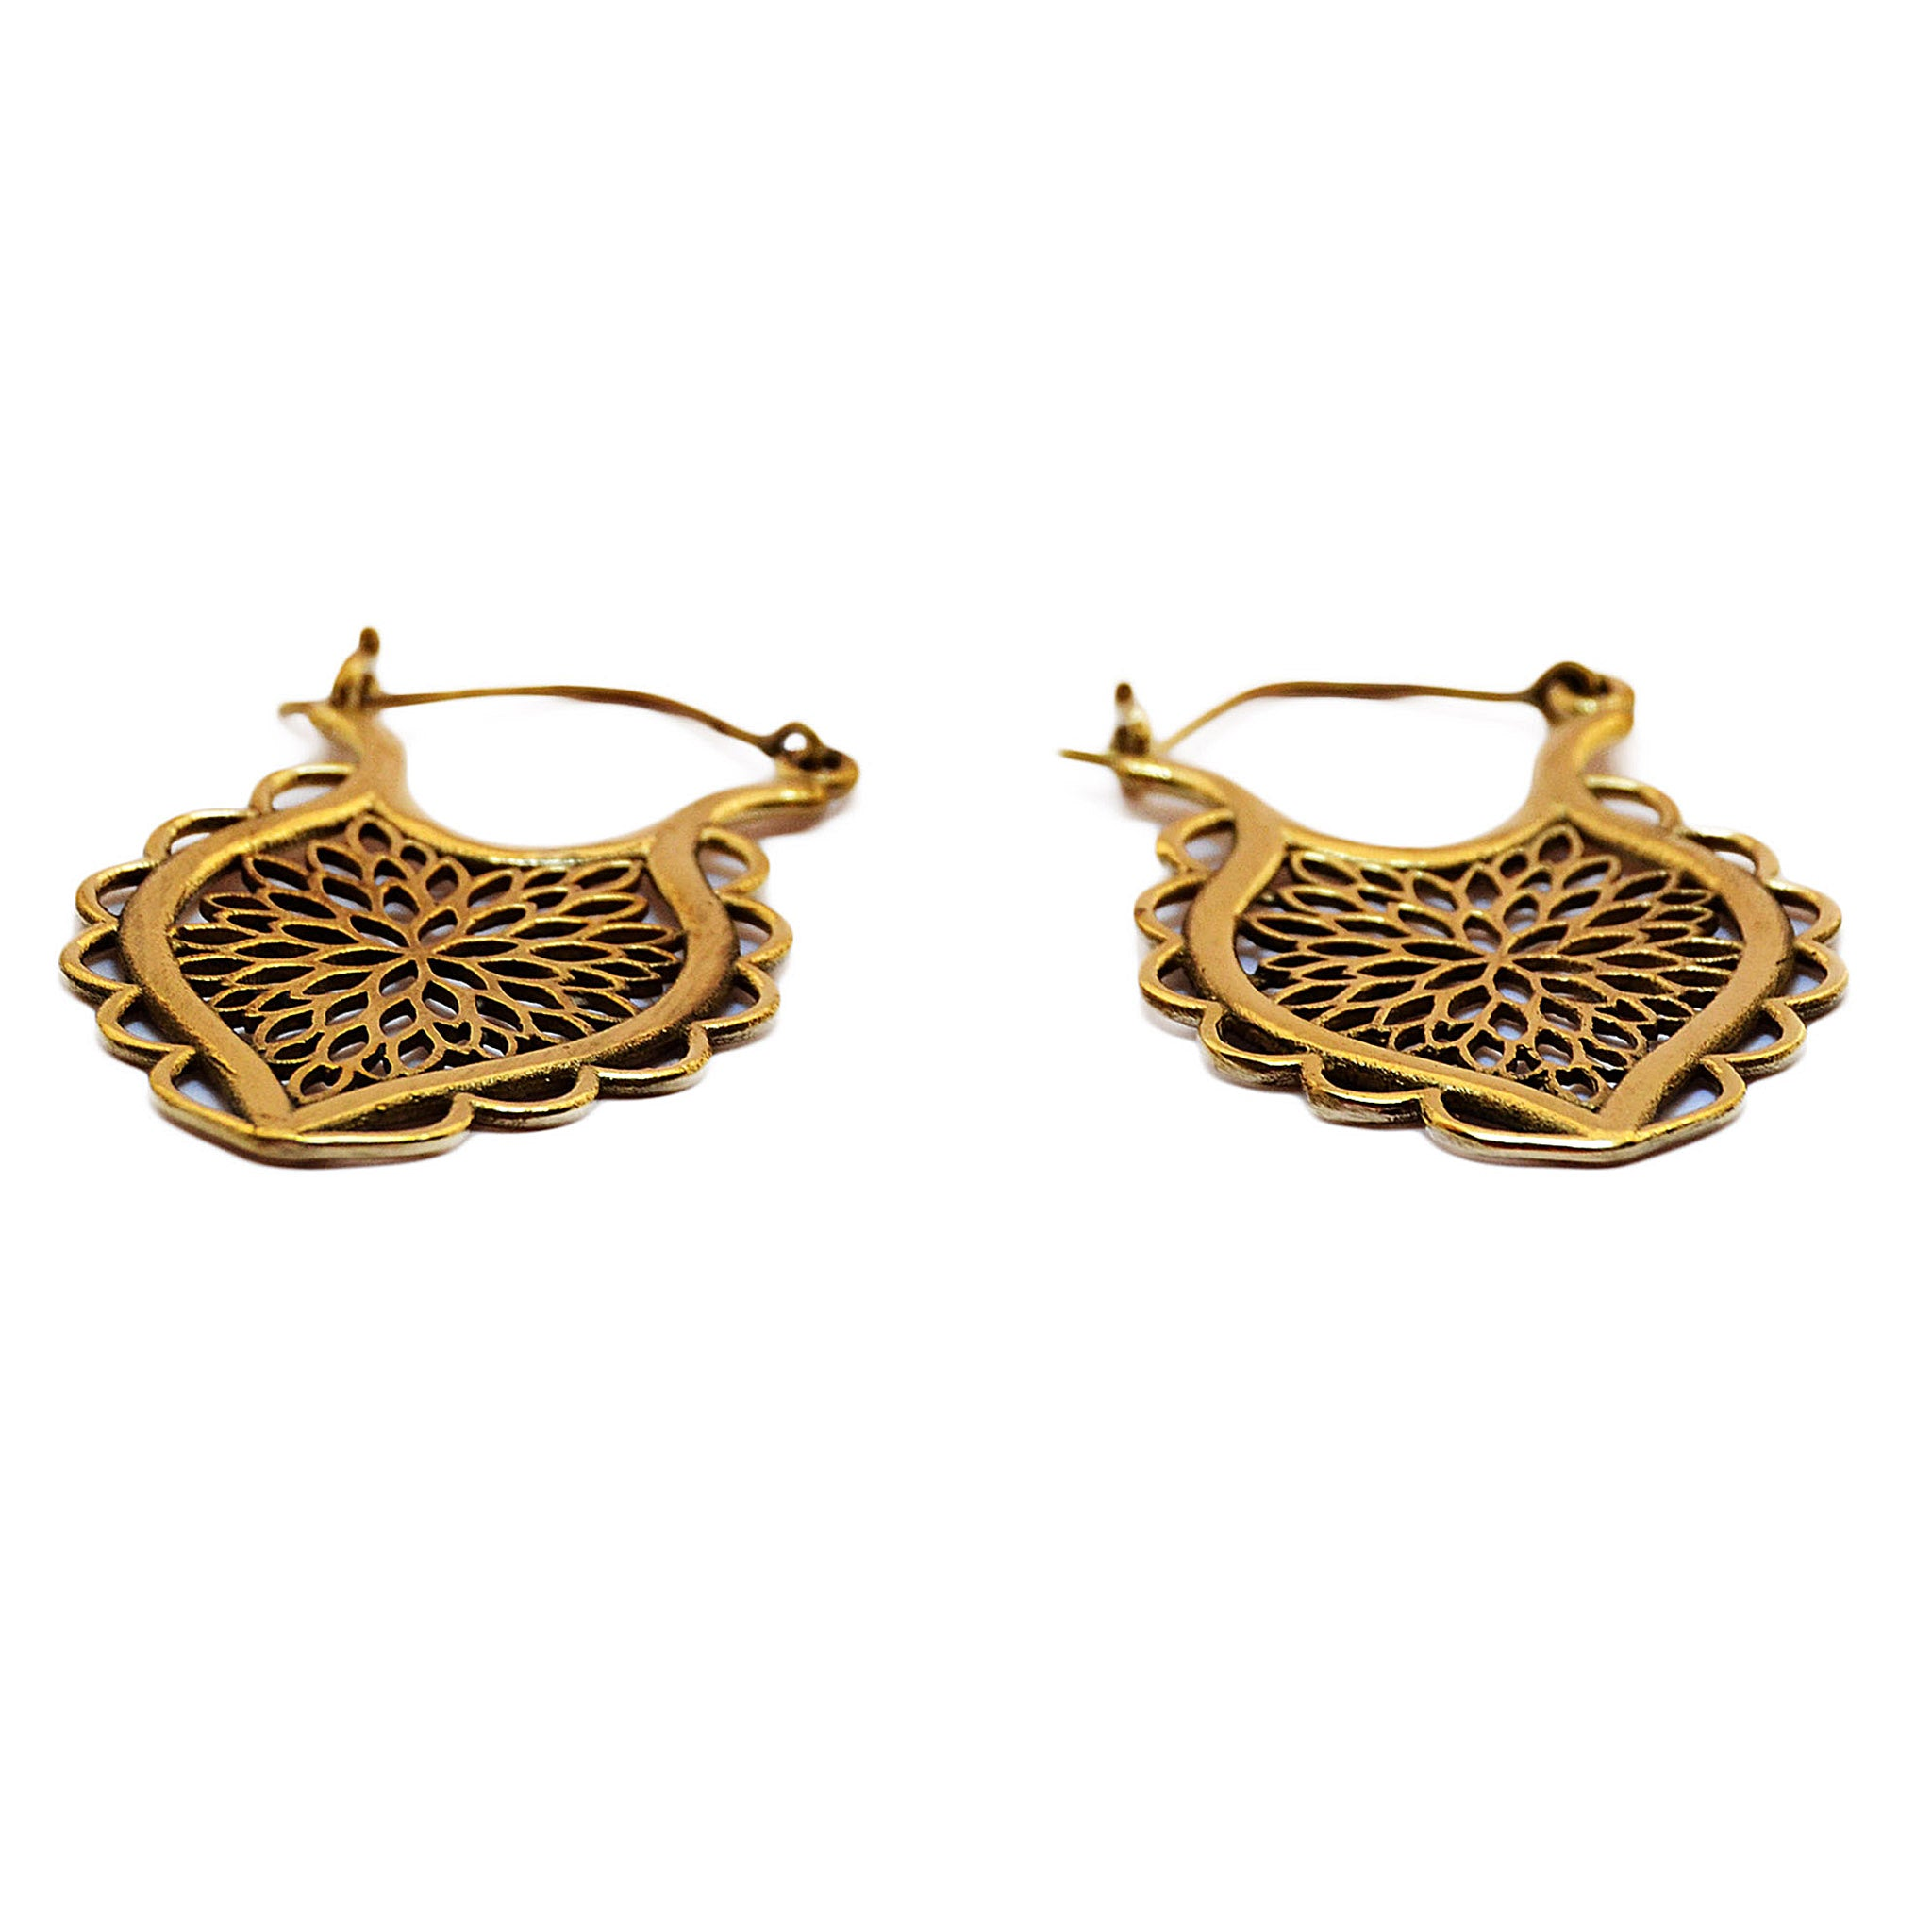 Gypsy indian earrings